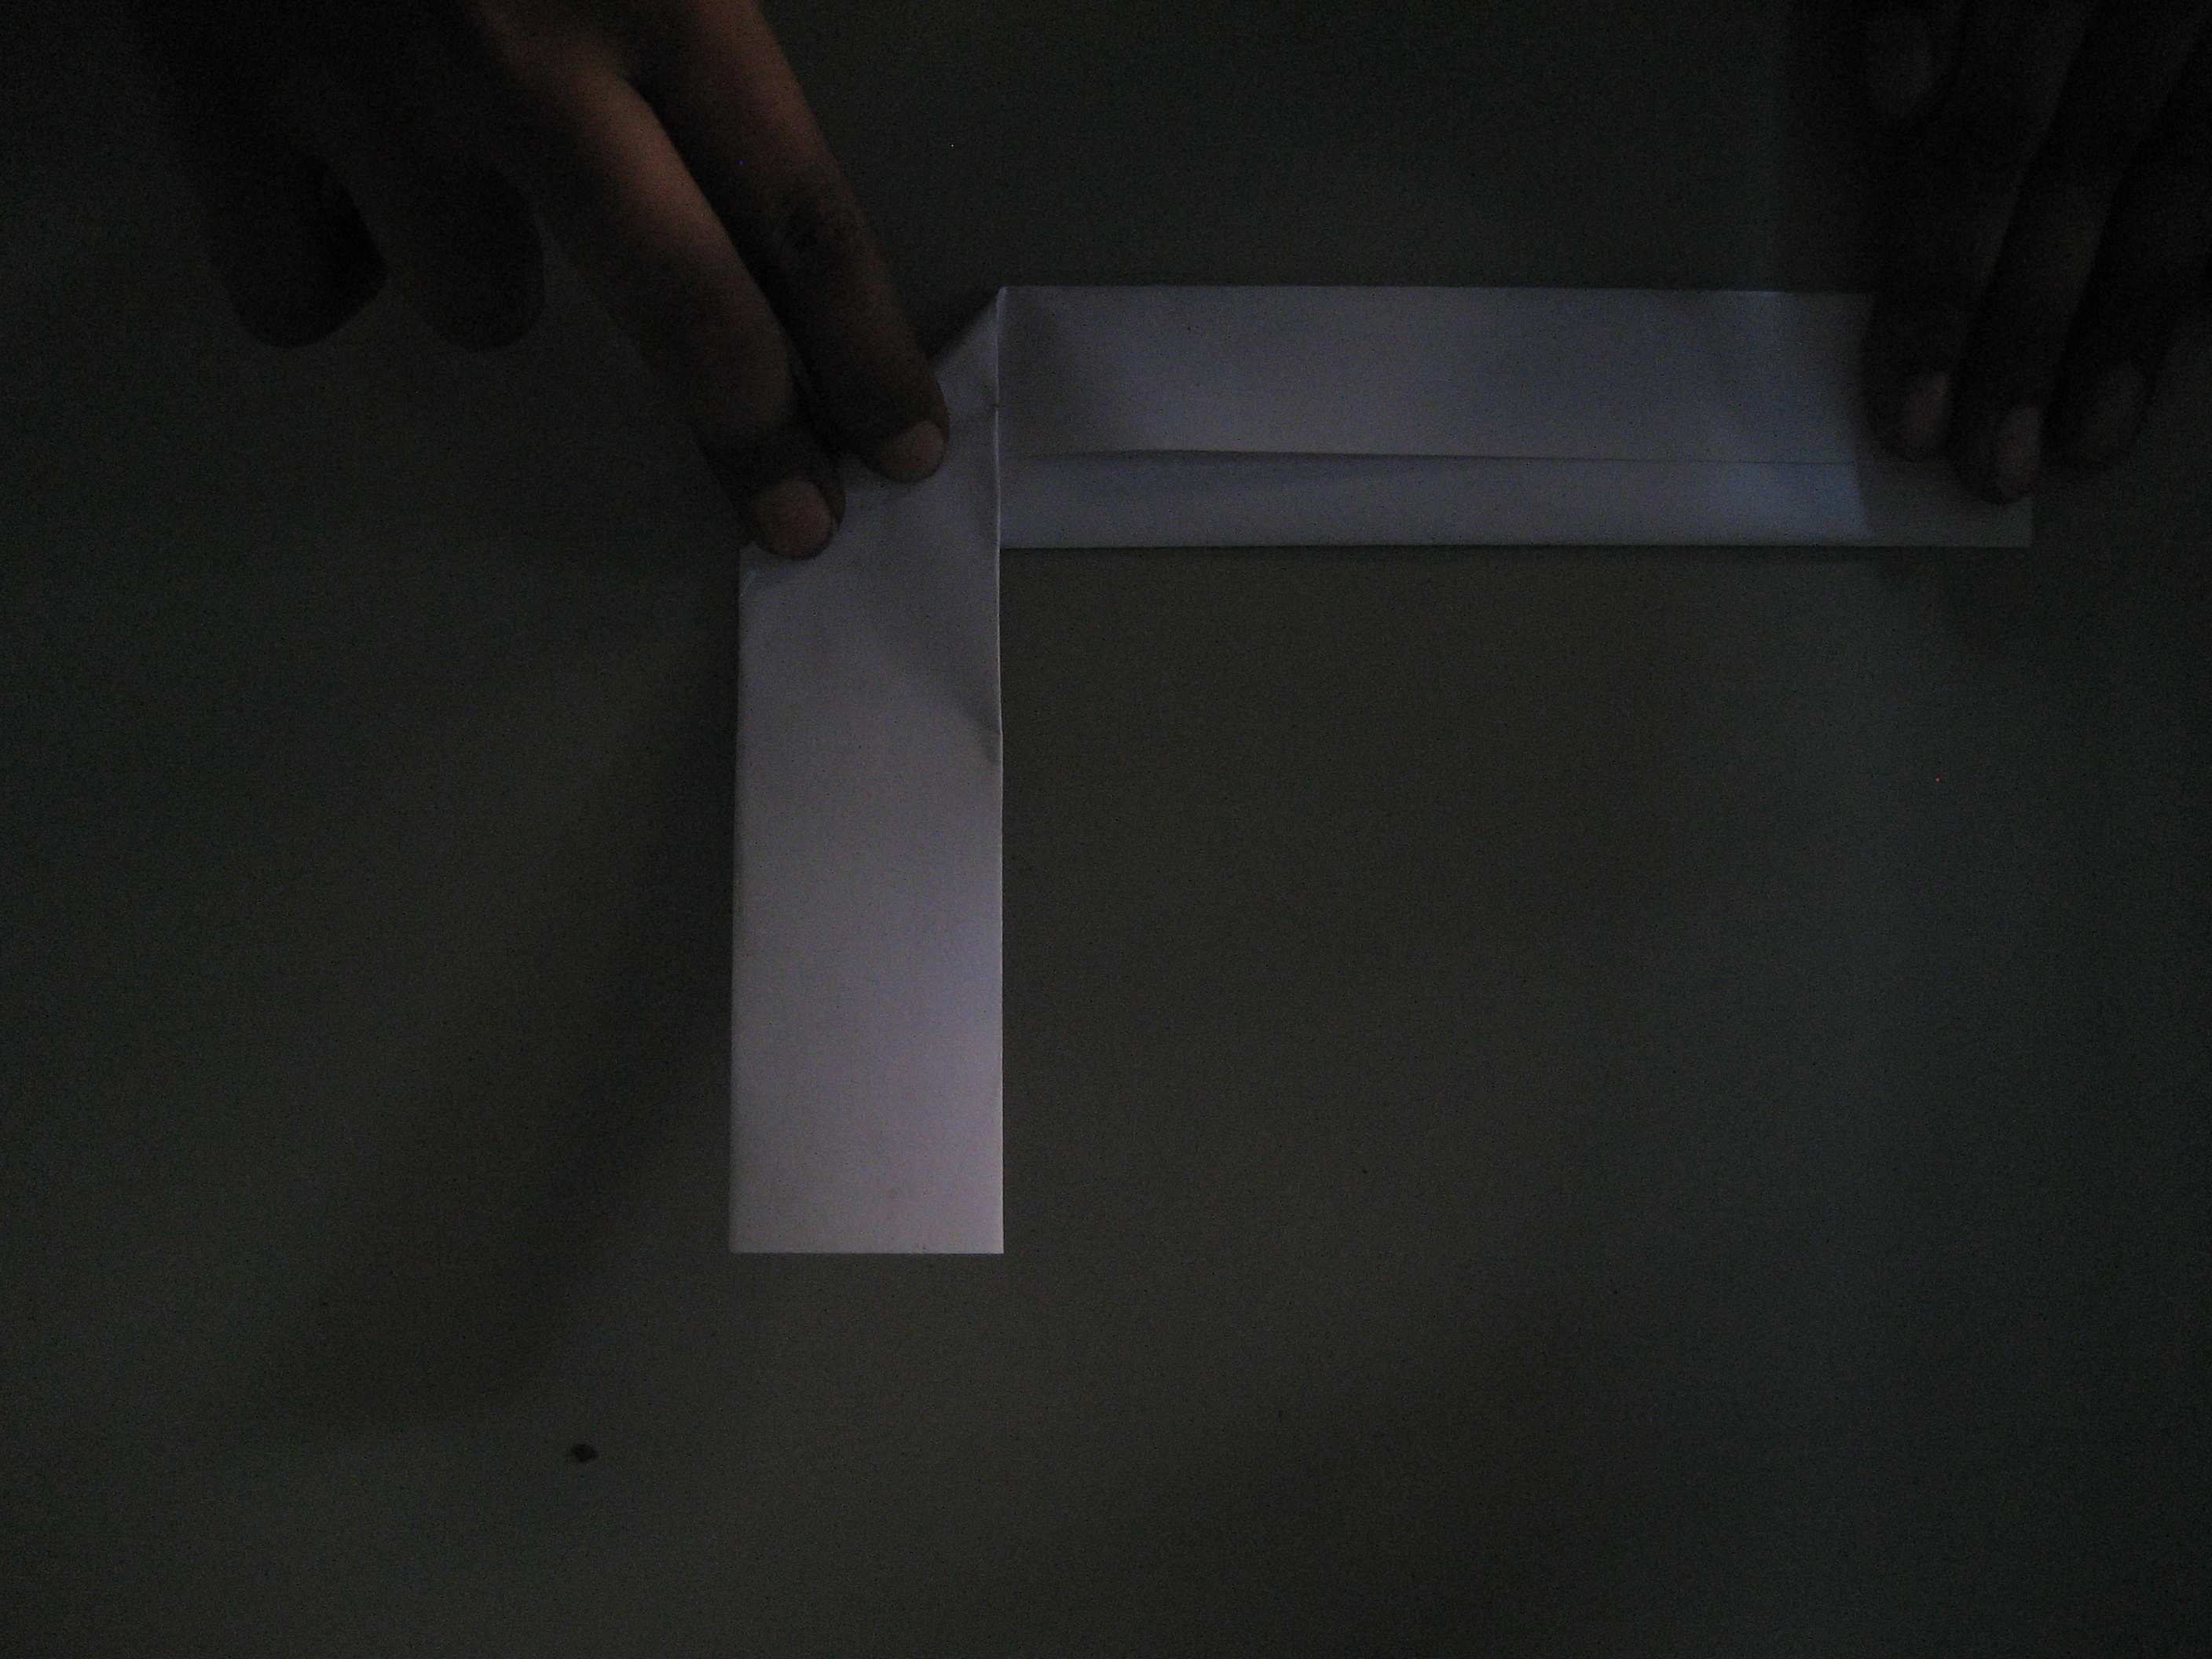 Picture of Then Fold It the Way It Is Shown in the Pic